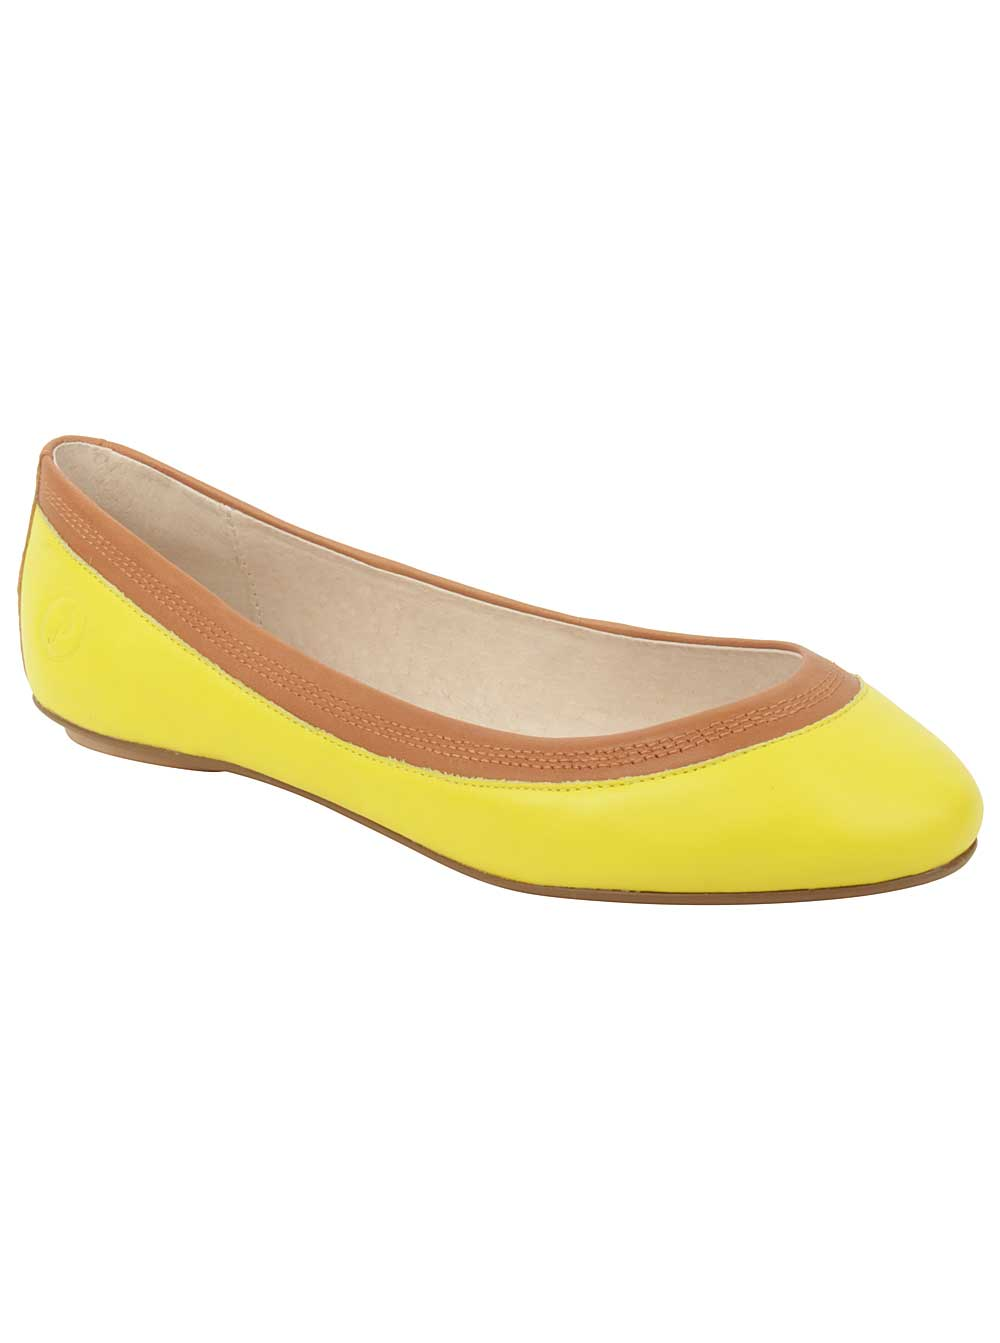 Bronx Women's Need a Break Flats in Lime by